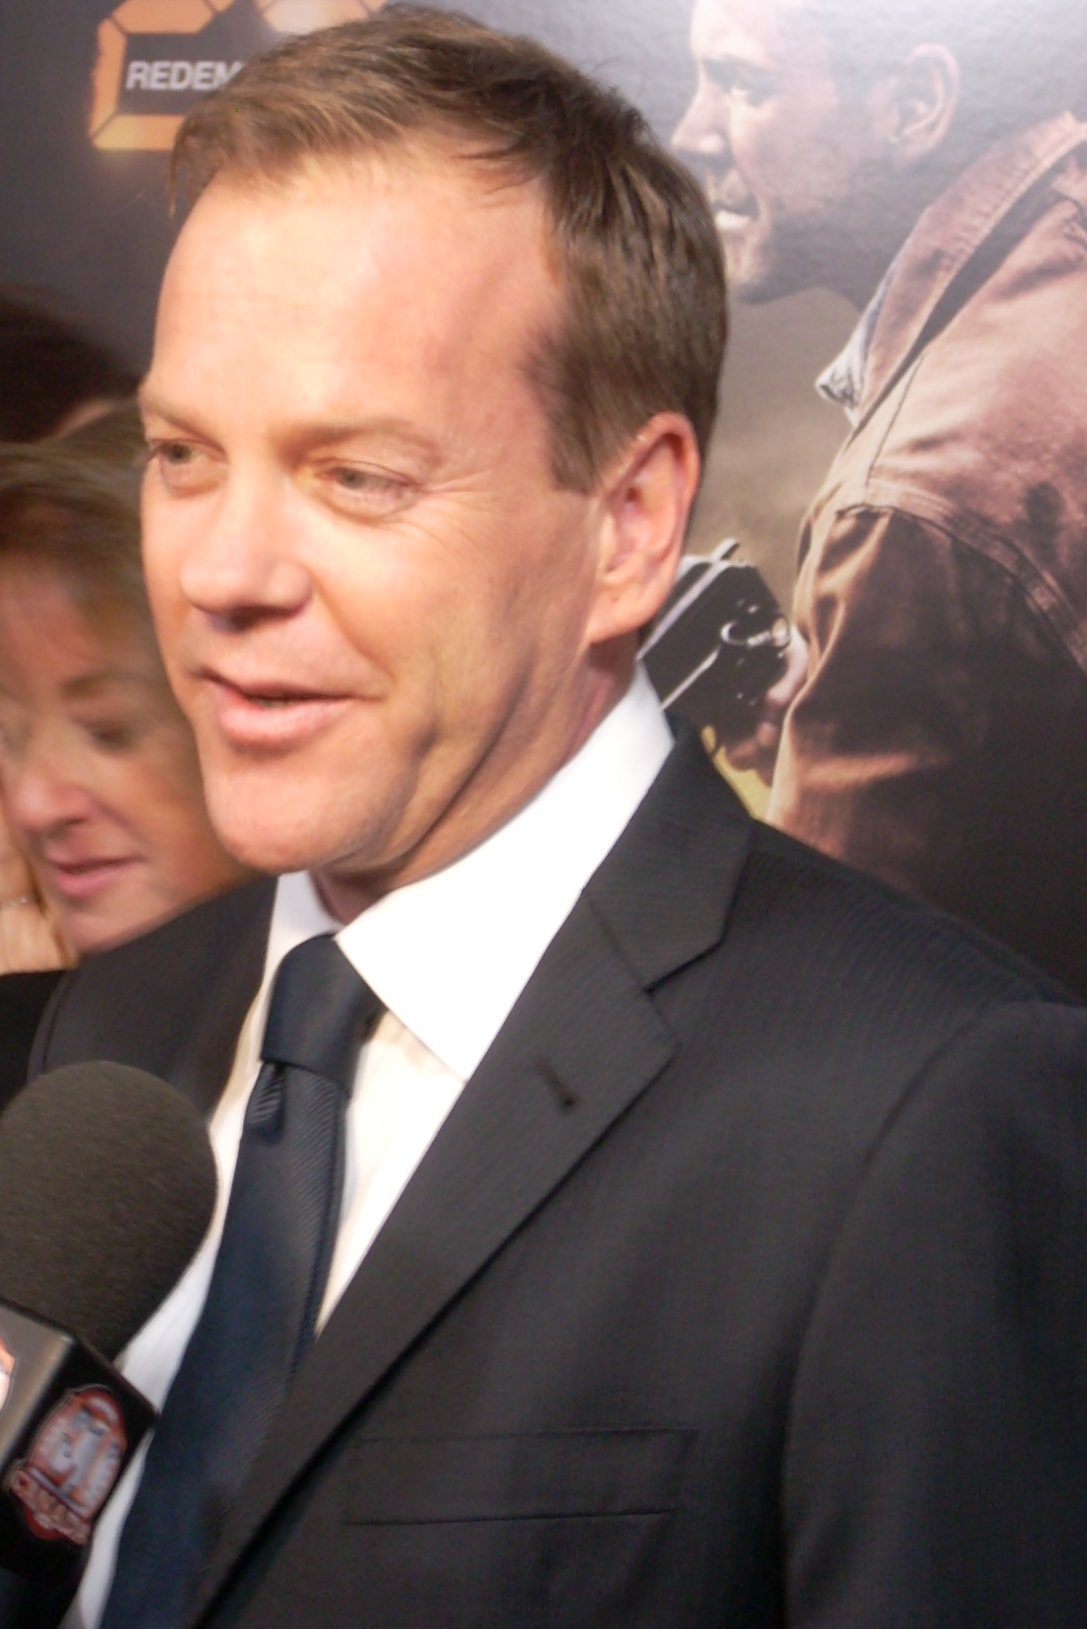 kiefer-sutherland-at-24-redemption-premiere-1-cropped-